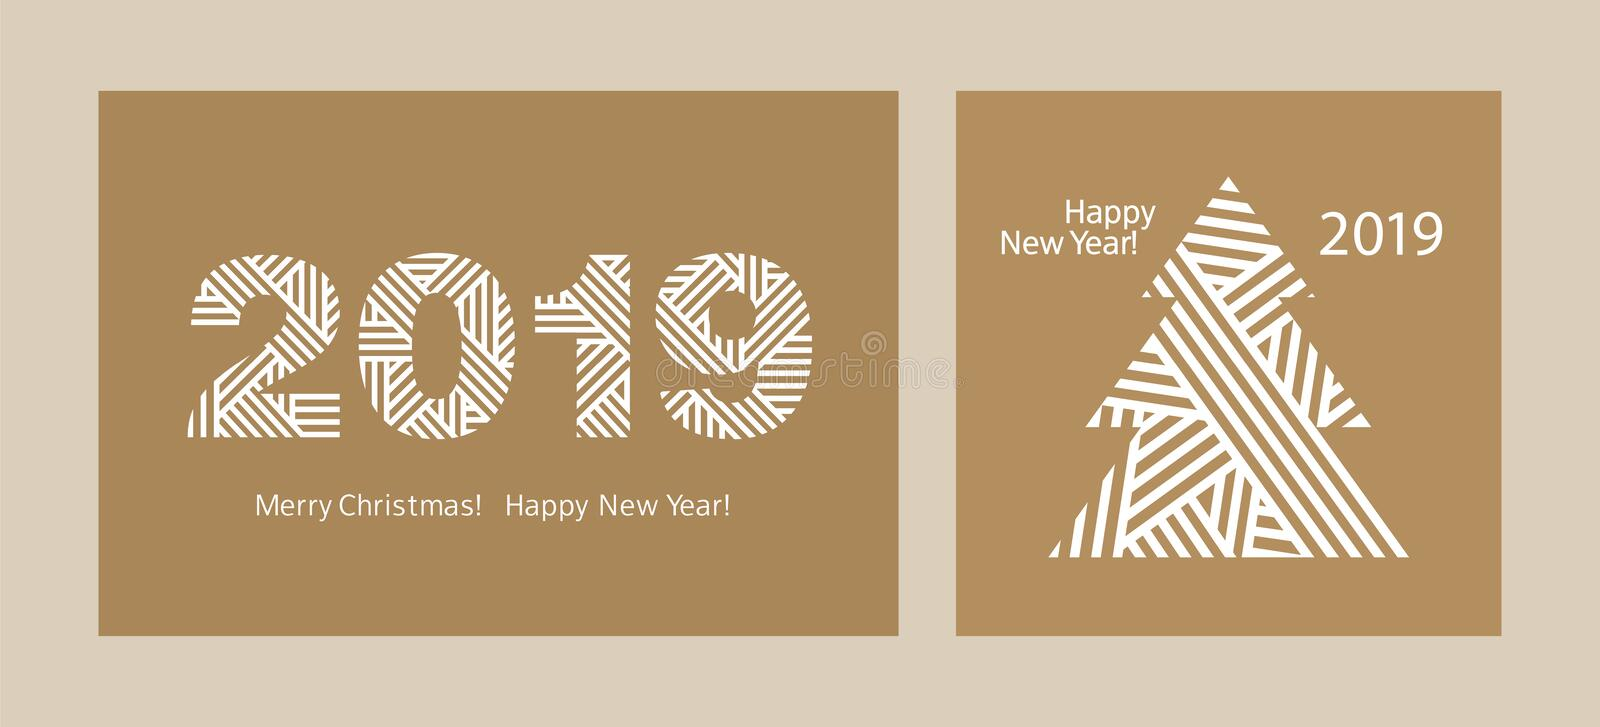 Happy New Year 2019. Set of simple Greeting cards. Merry Christmas. Kraft paper. Vector royalty free illustration